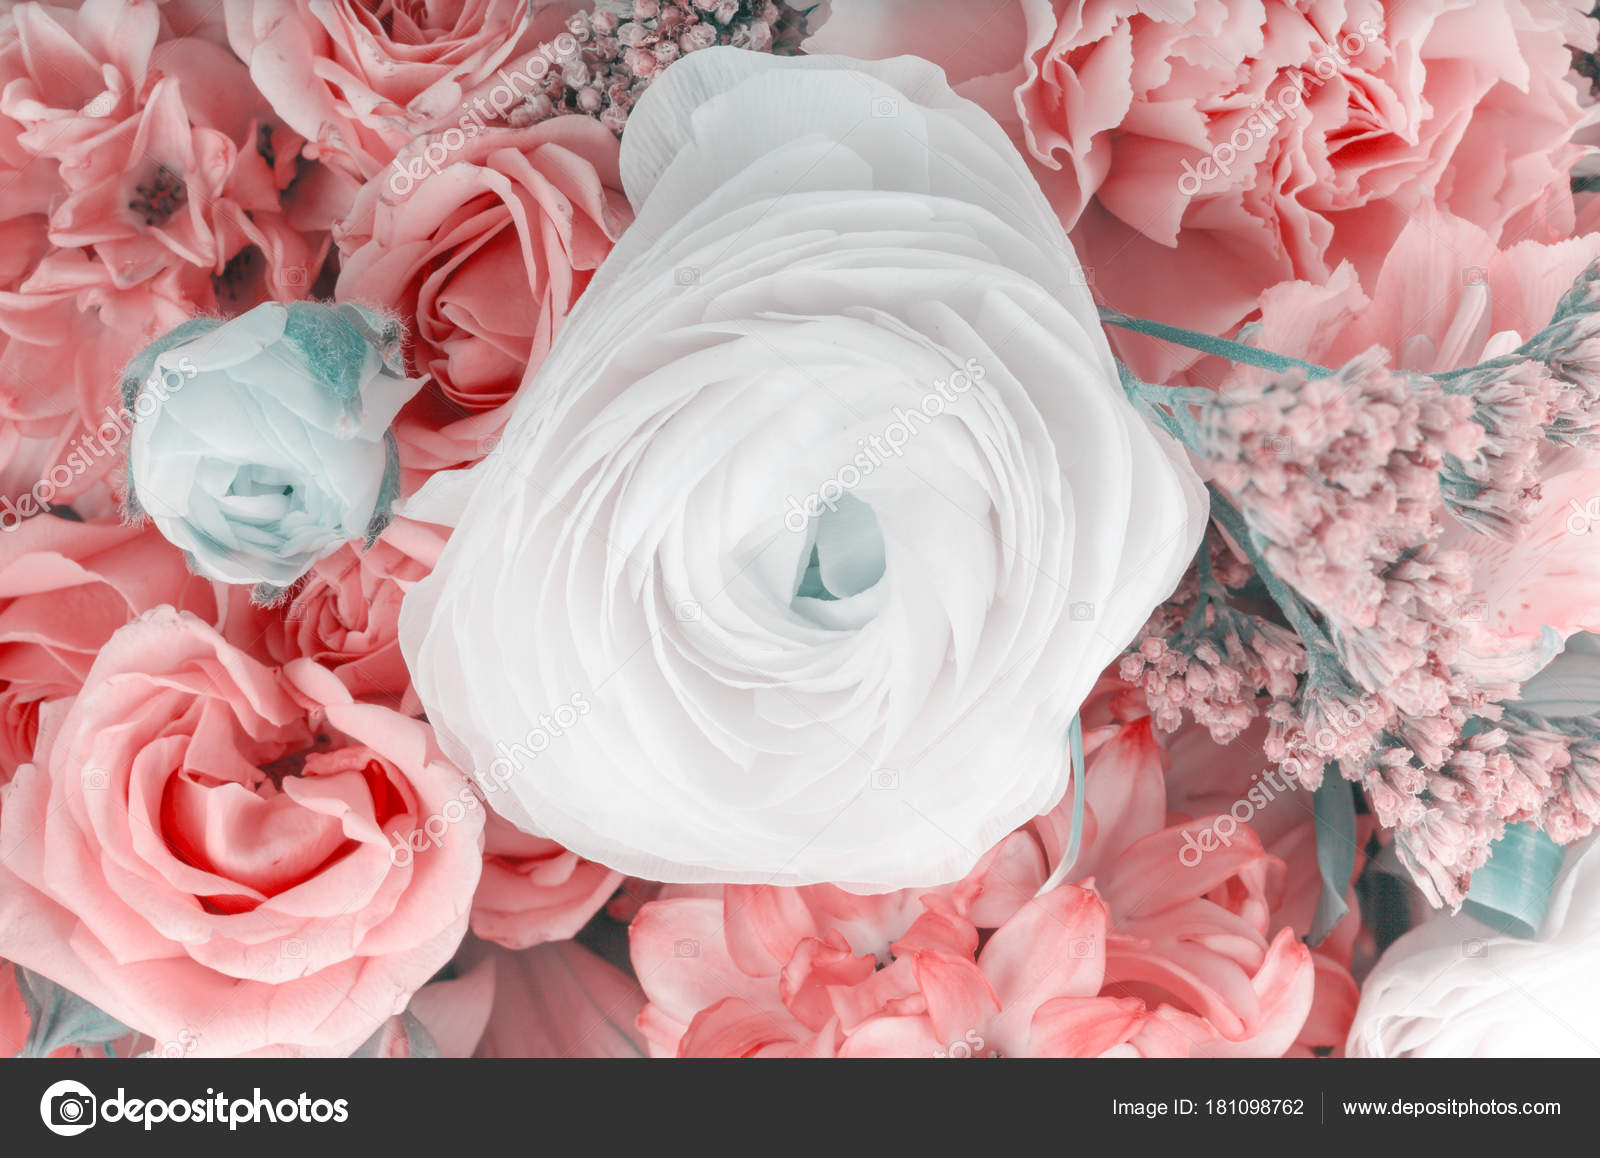 Amazing flower bouquet arrangement stock photo escander81 181098762 amazing flower bouquet arrangement close up in pastel colors photo by escander81 izmirmasajfo